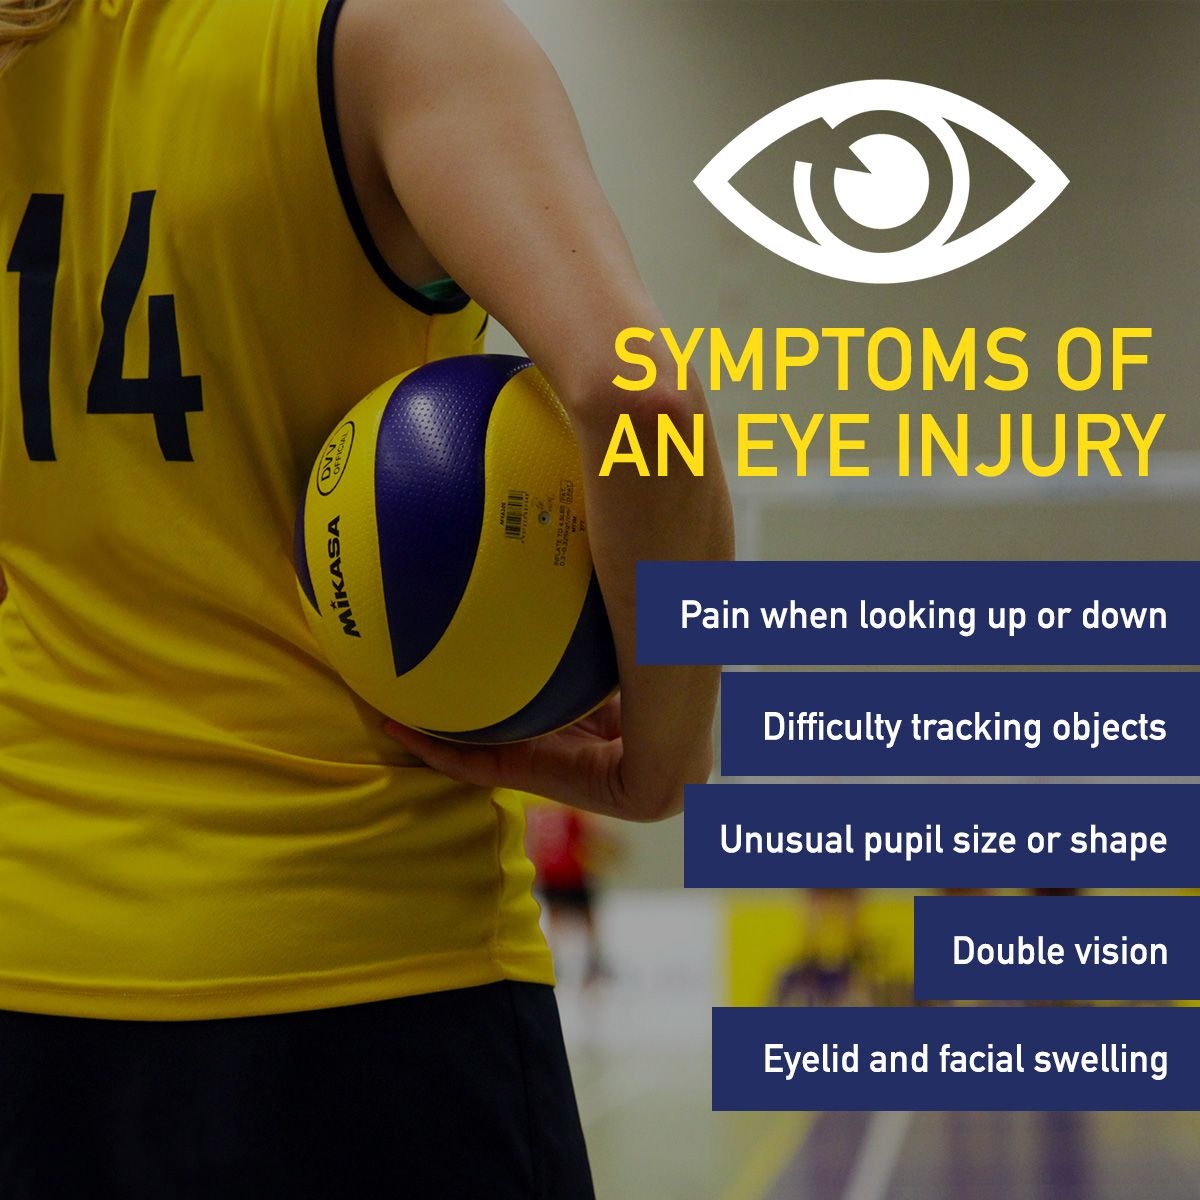 WE KNOW ATHLETES LIKE TO BE TOUGH, but these symptoms